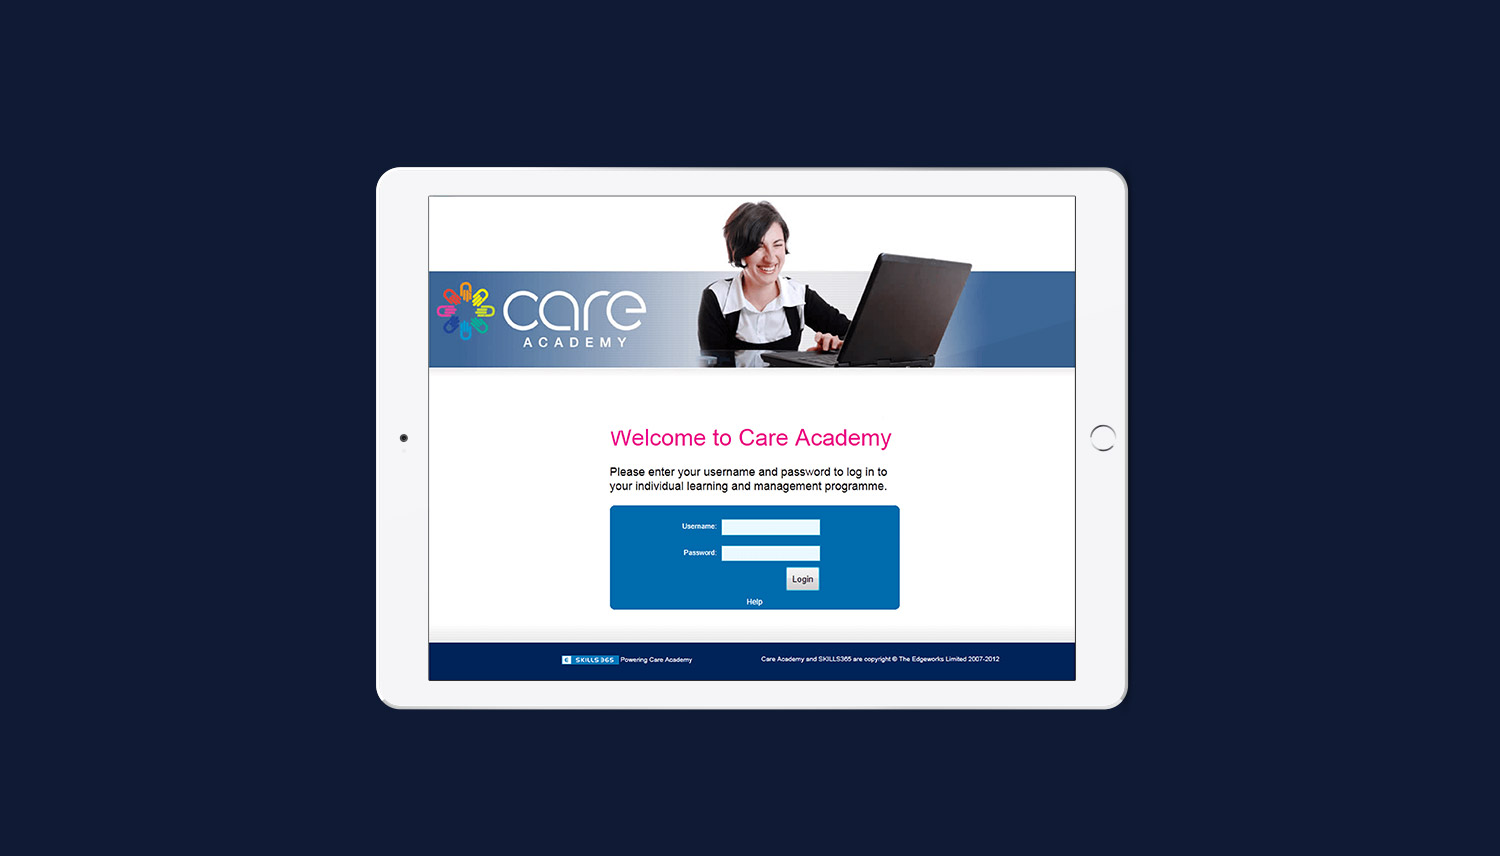 Care Academy login